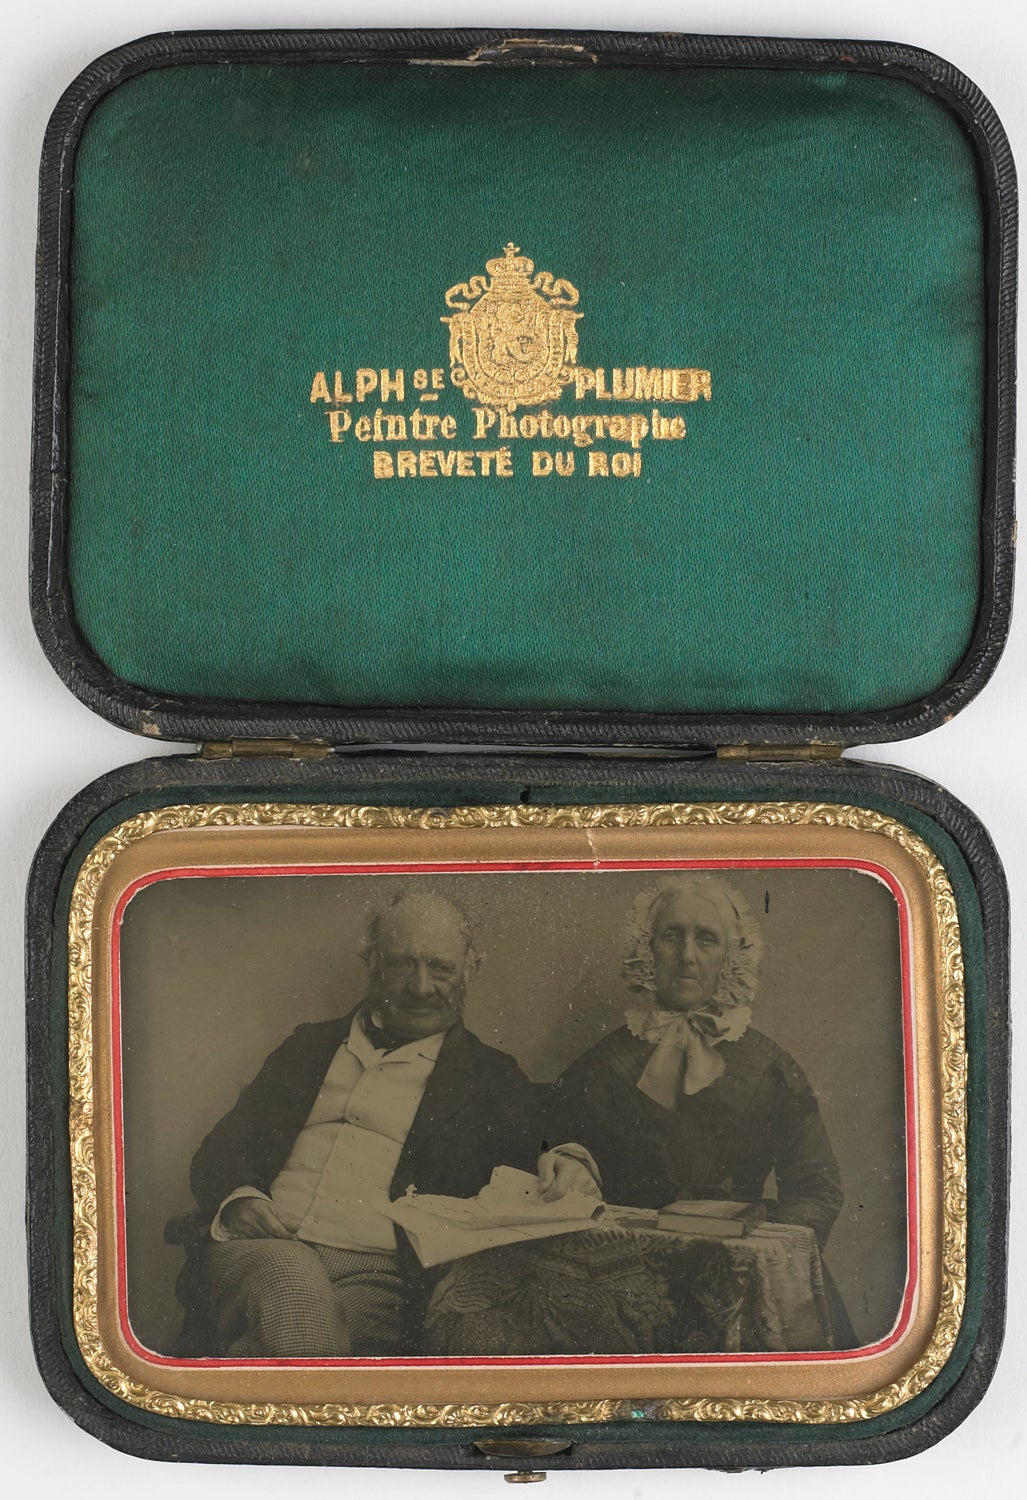 Image of Alphonse Plumier: ambrotype of a man and woman in a signed case, ca. 1860